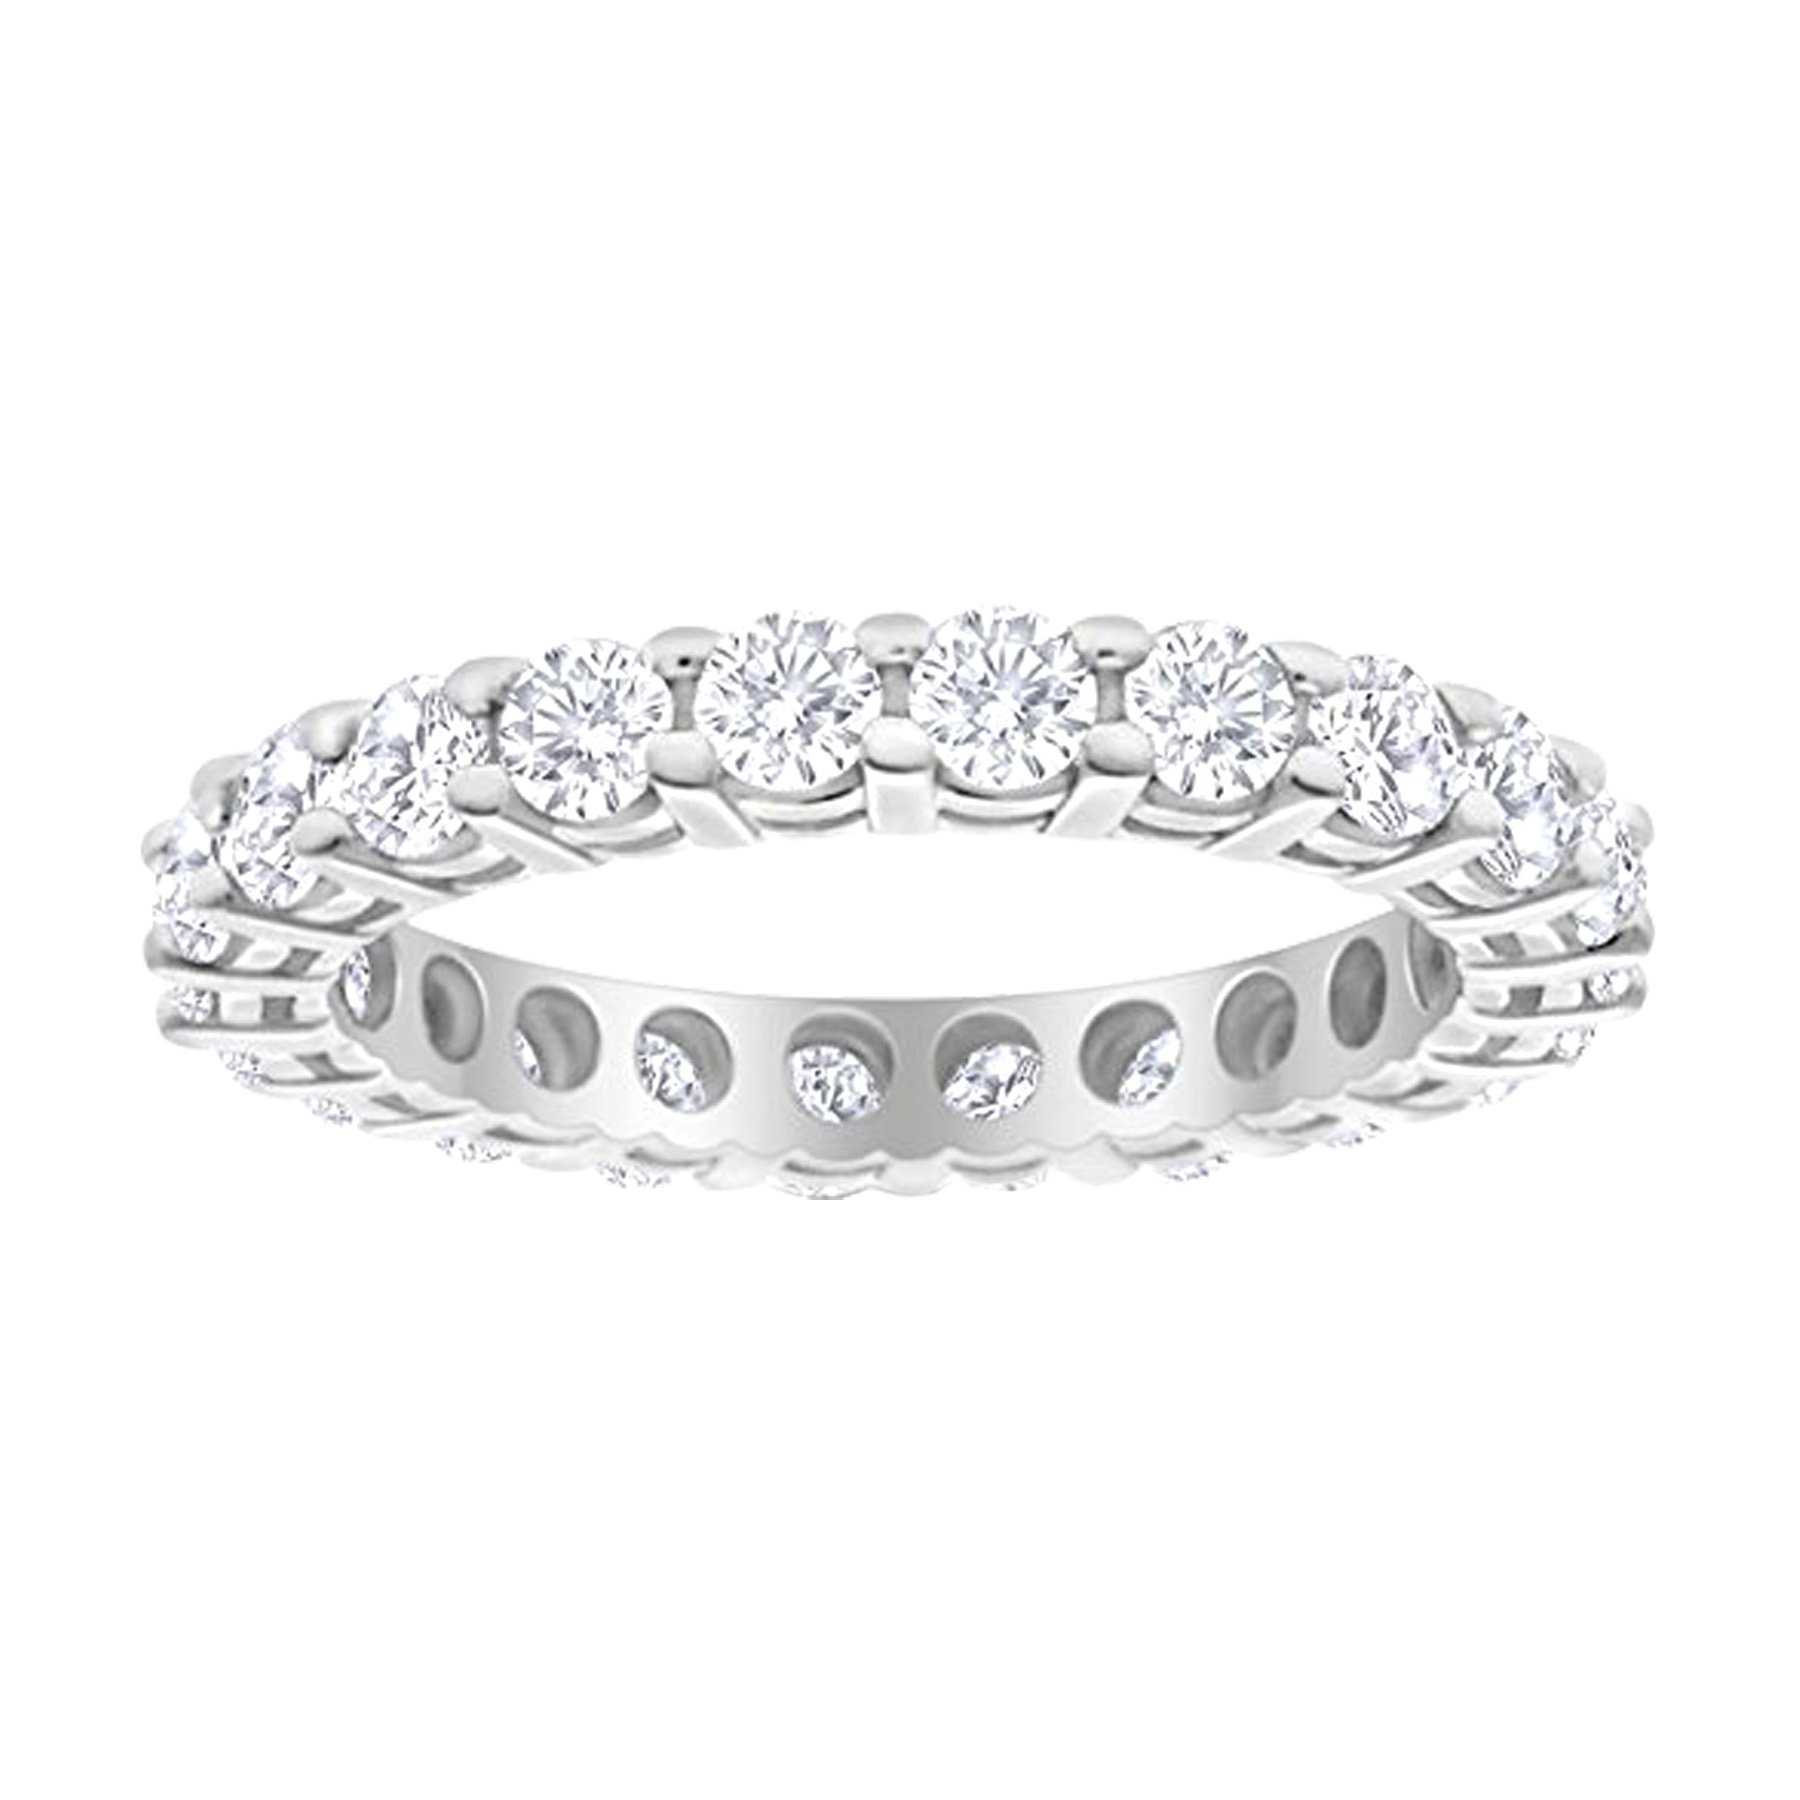 1.5 1 1/2 Carat (ctw) 14K White Gold Round Diamond Ladies Eternity Wedding Anniversary Stackable Ring Band Ultra Premium Collection